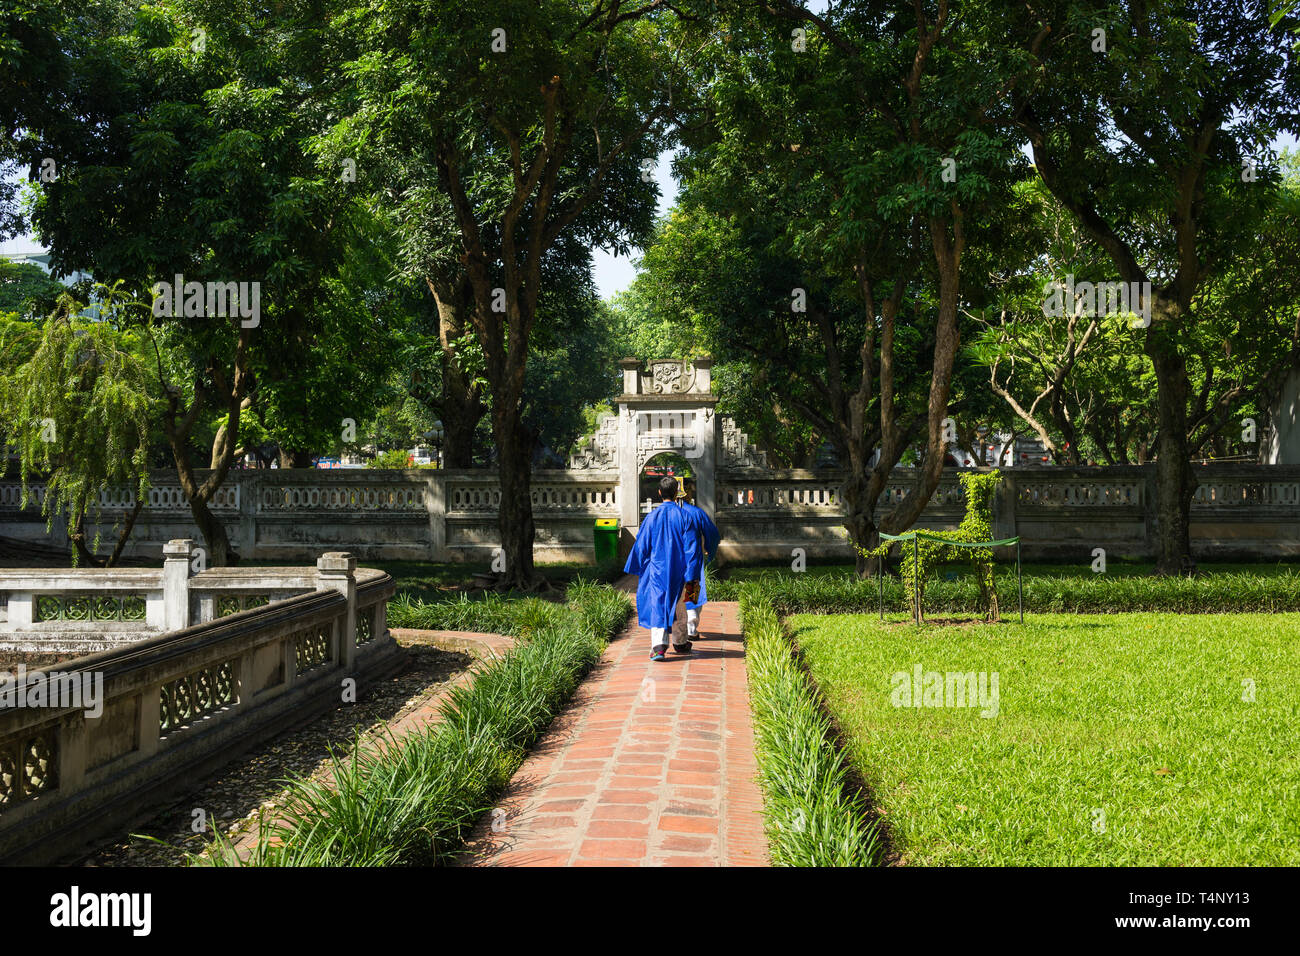 Second Courtyard In Temper Of Literature Or Van Mieu With Two Men Wearing Old Traditional Long Dress Ao Dai Walking On Courtyard Stock Photo Alamy